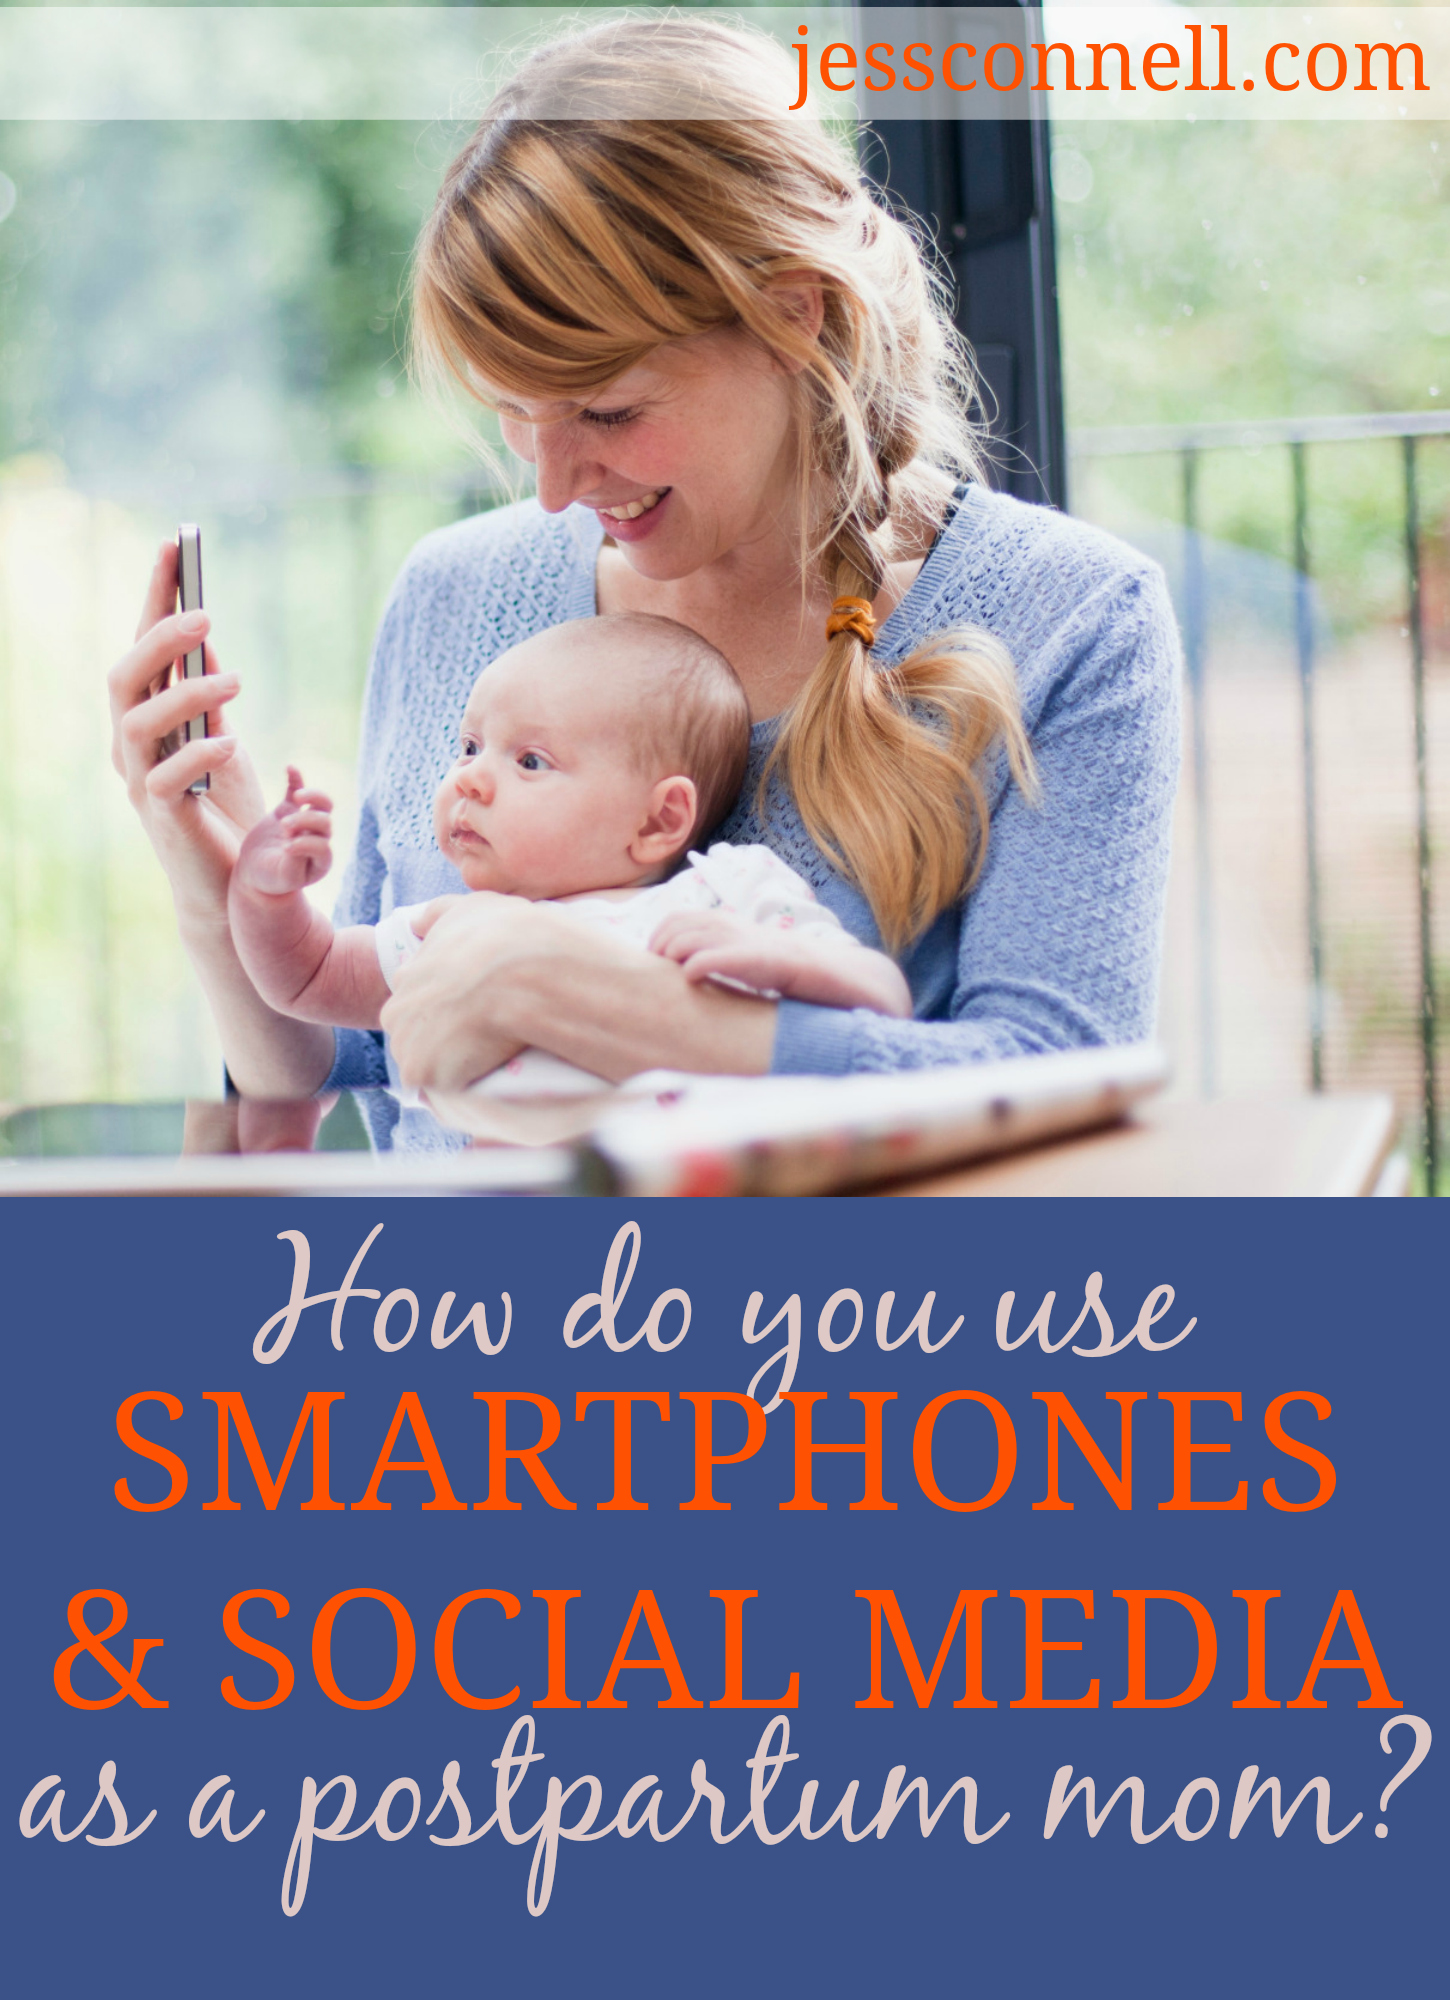 How Do You Use Smartphones & Social Media as a Postpartum Mom? // jessconnell.com